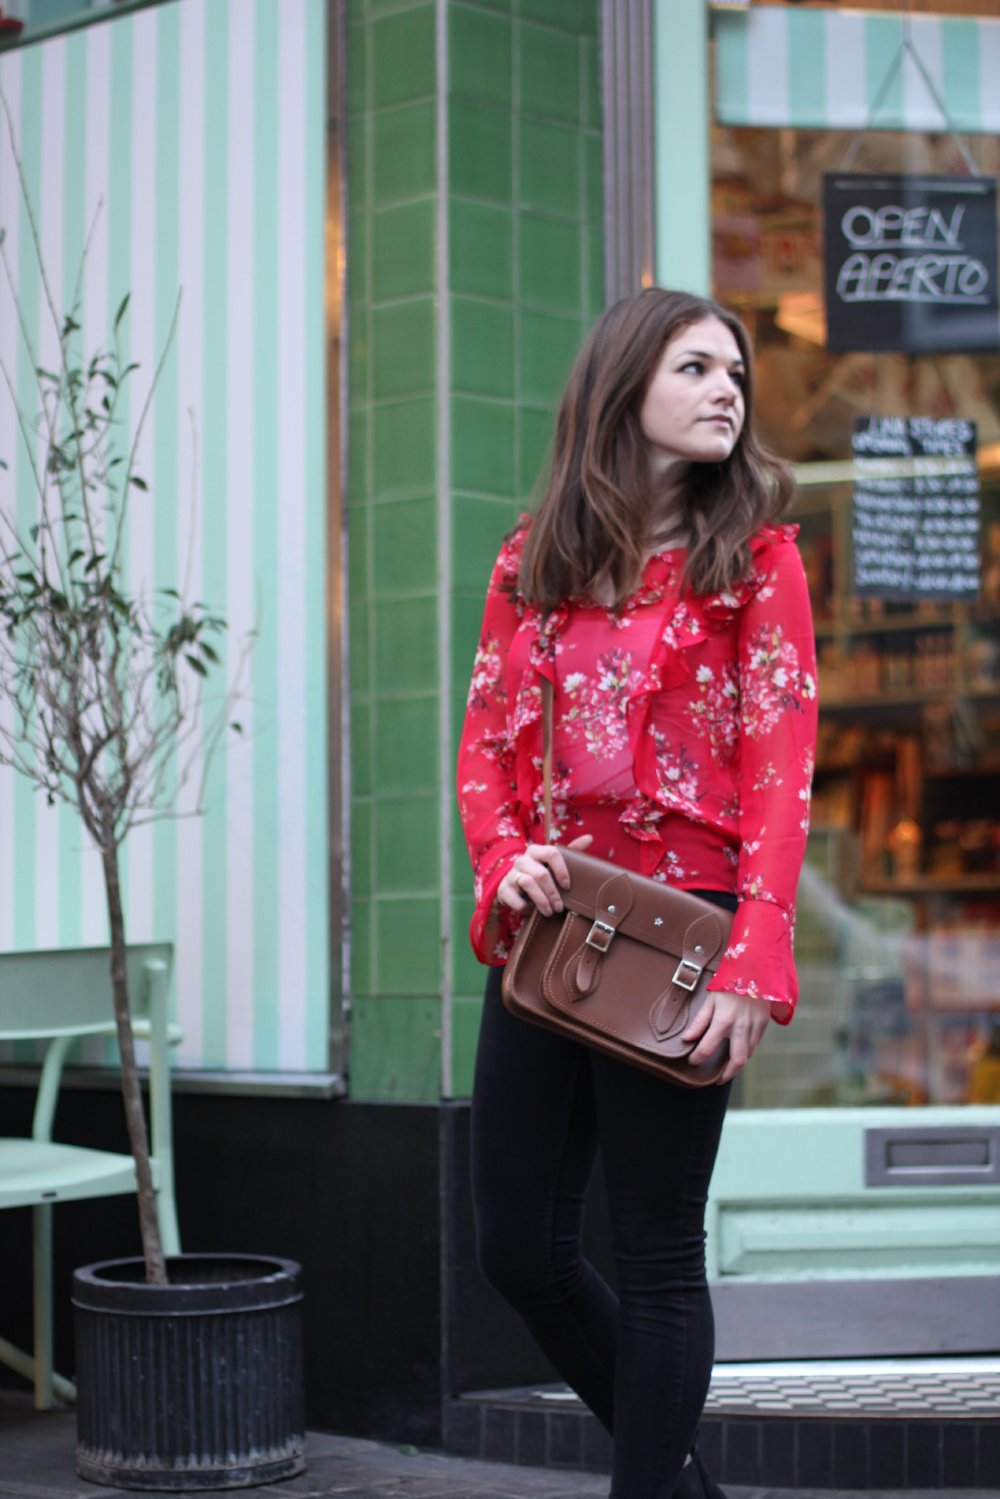 Cambridge Satchel - Our Bags